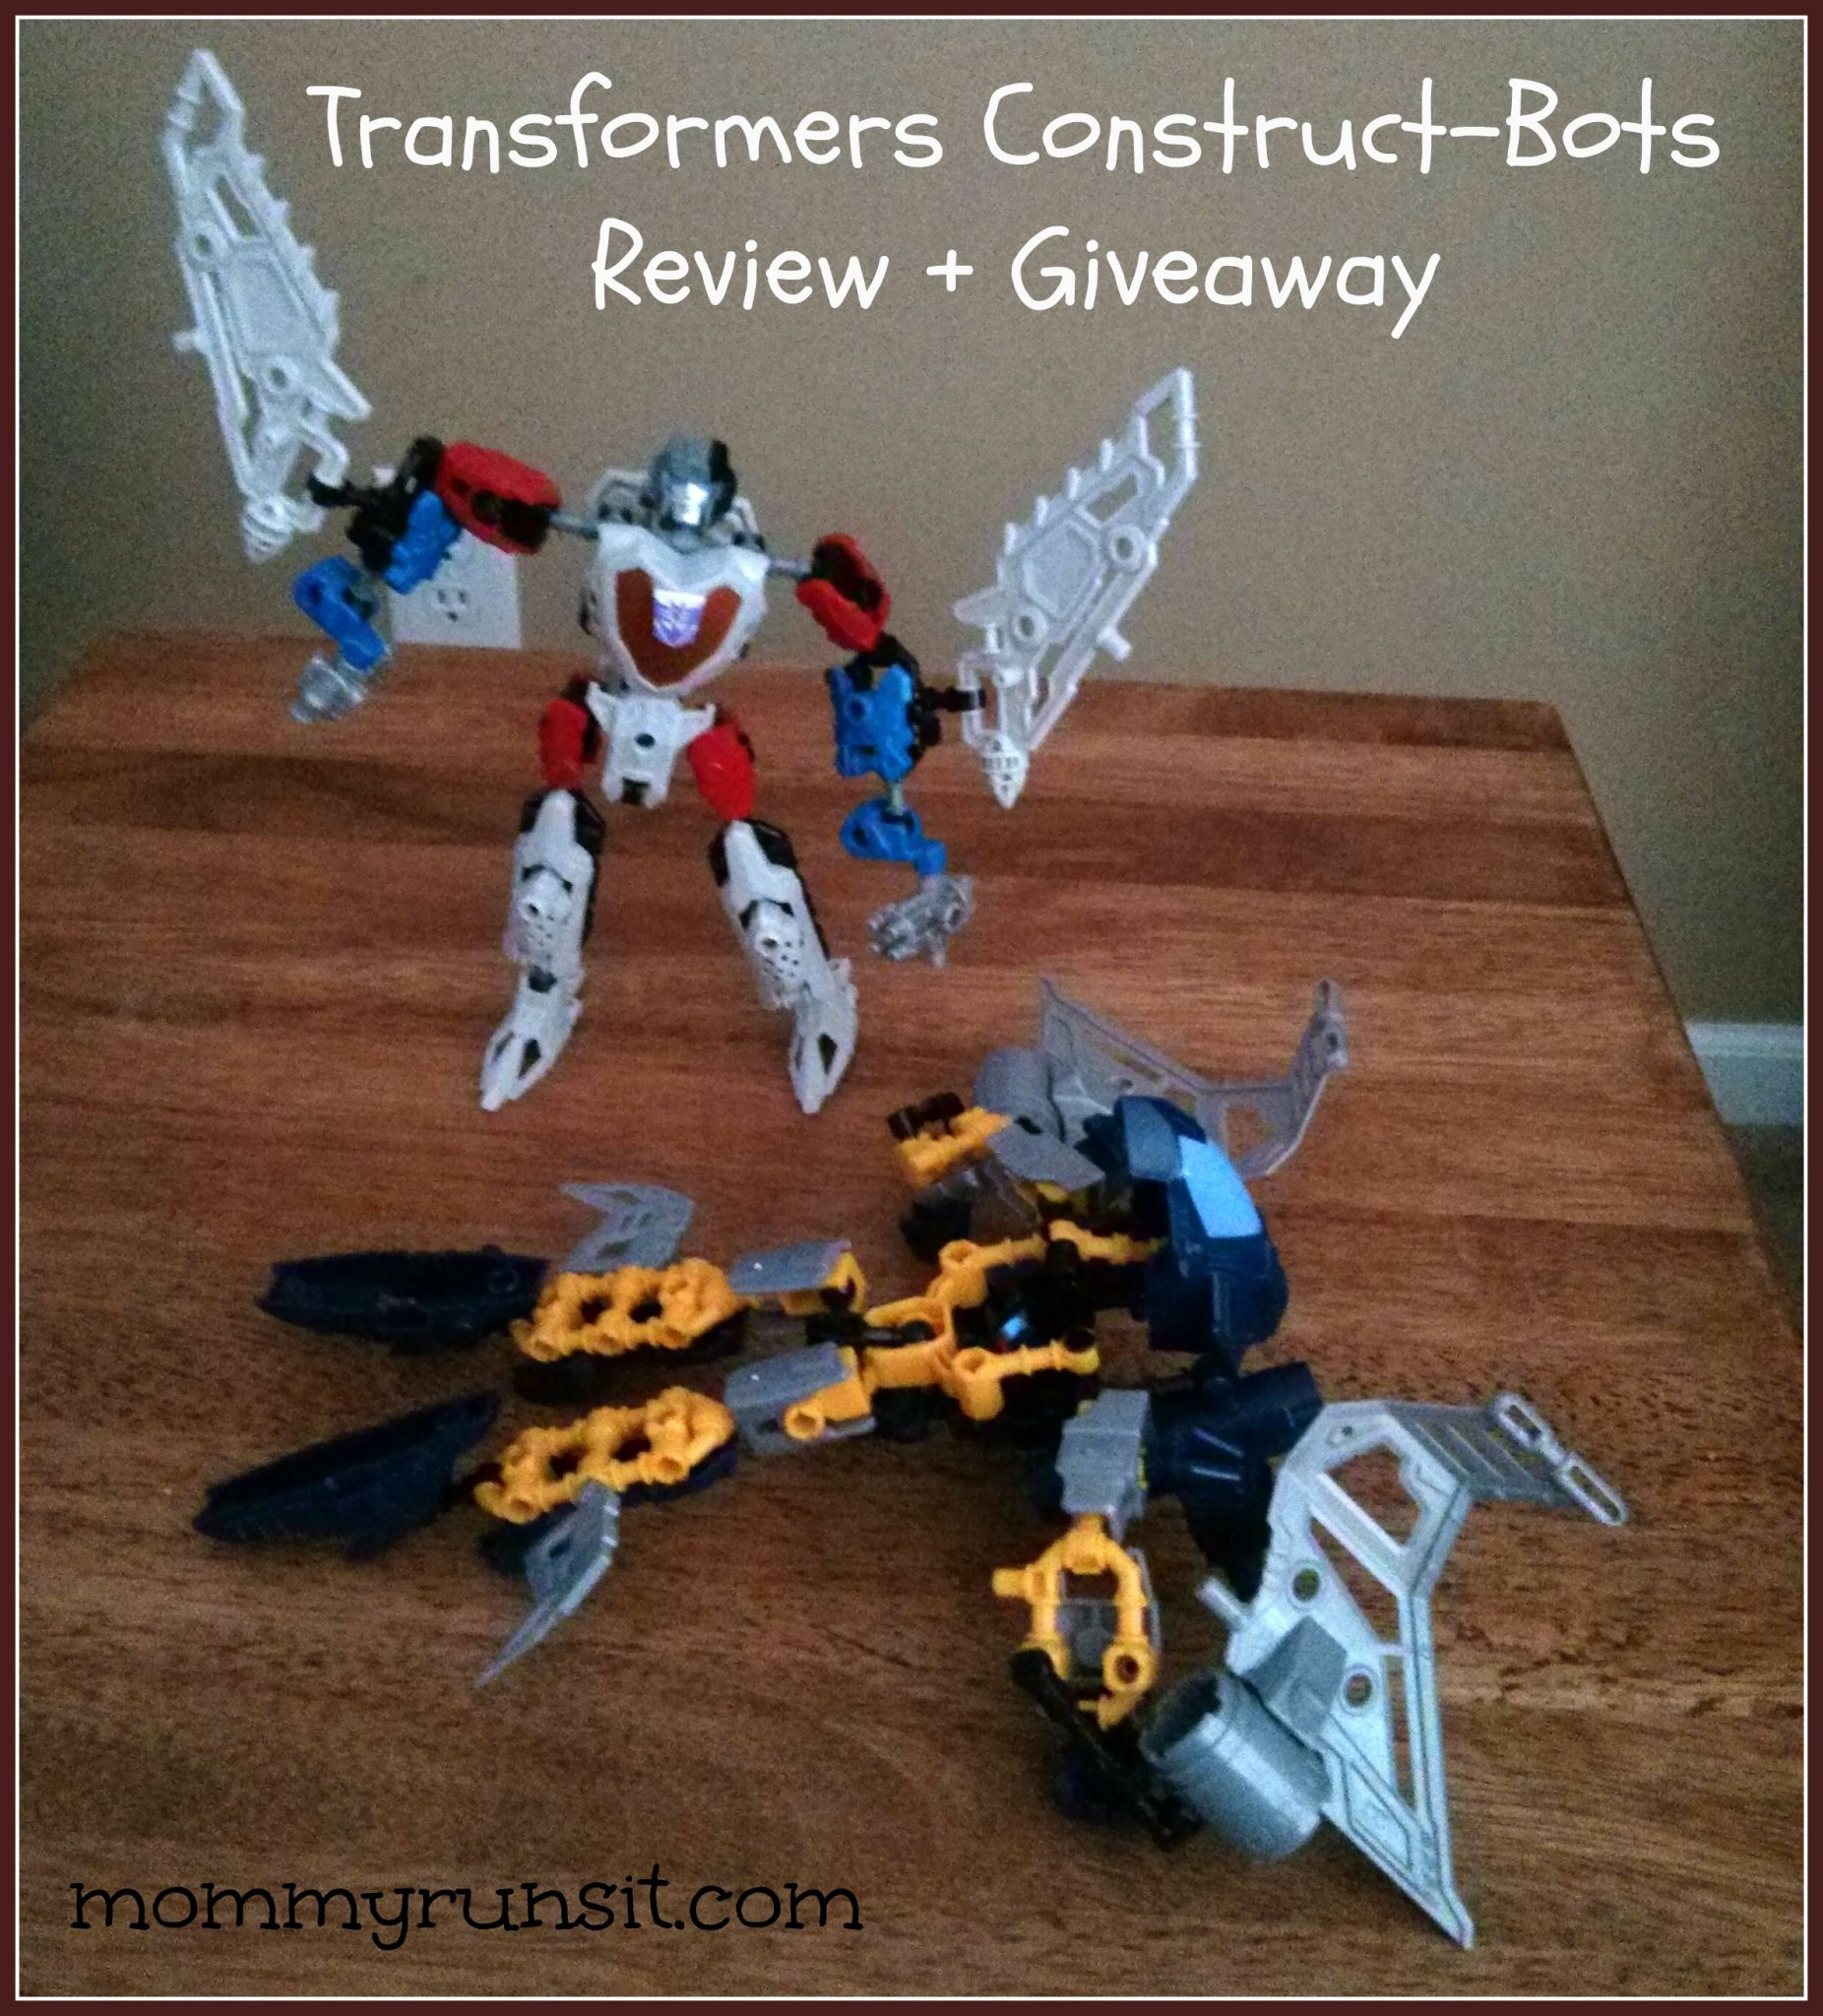 Transformers Construct-Bots | Mommy Runs It